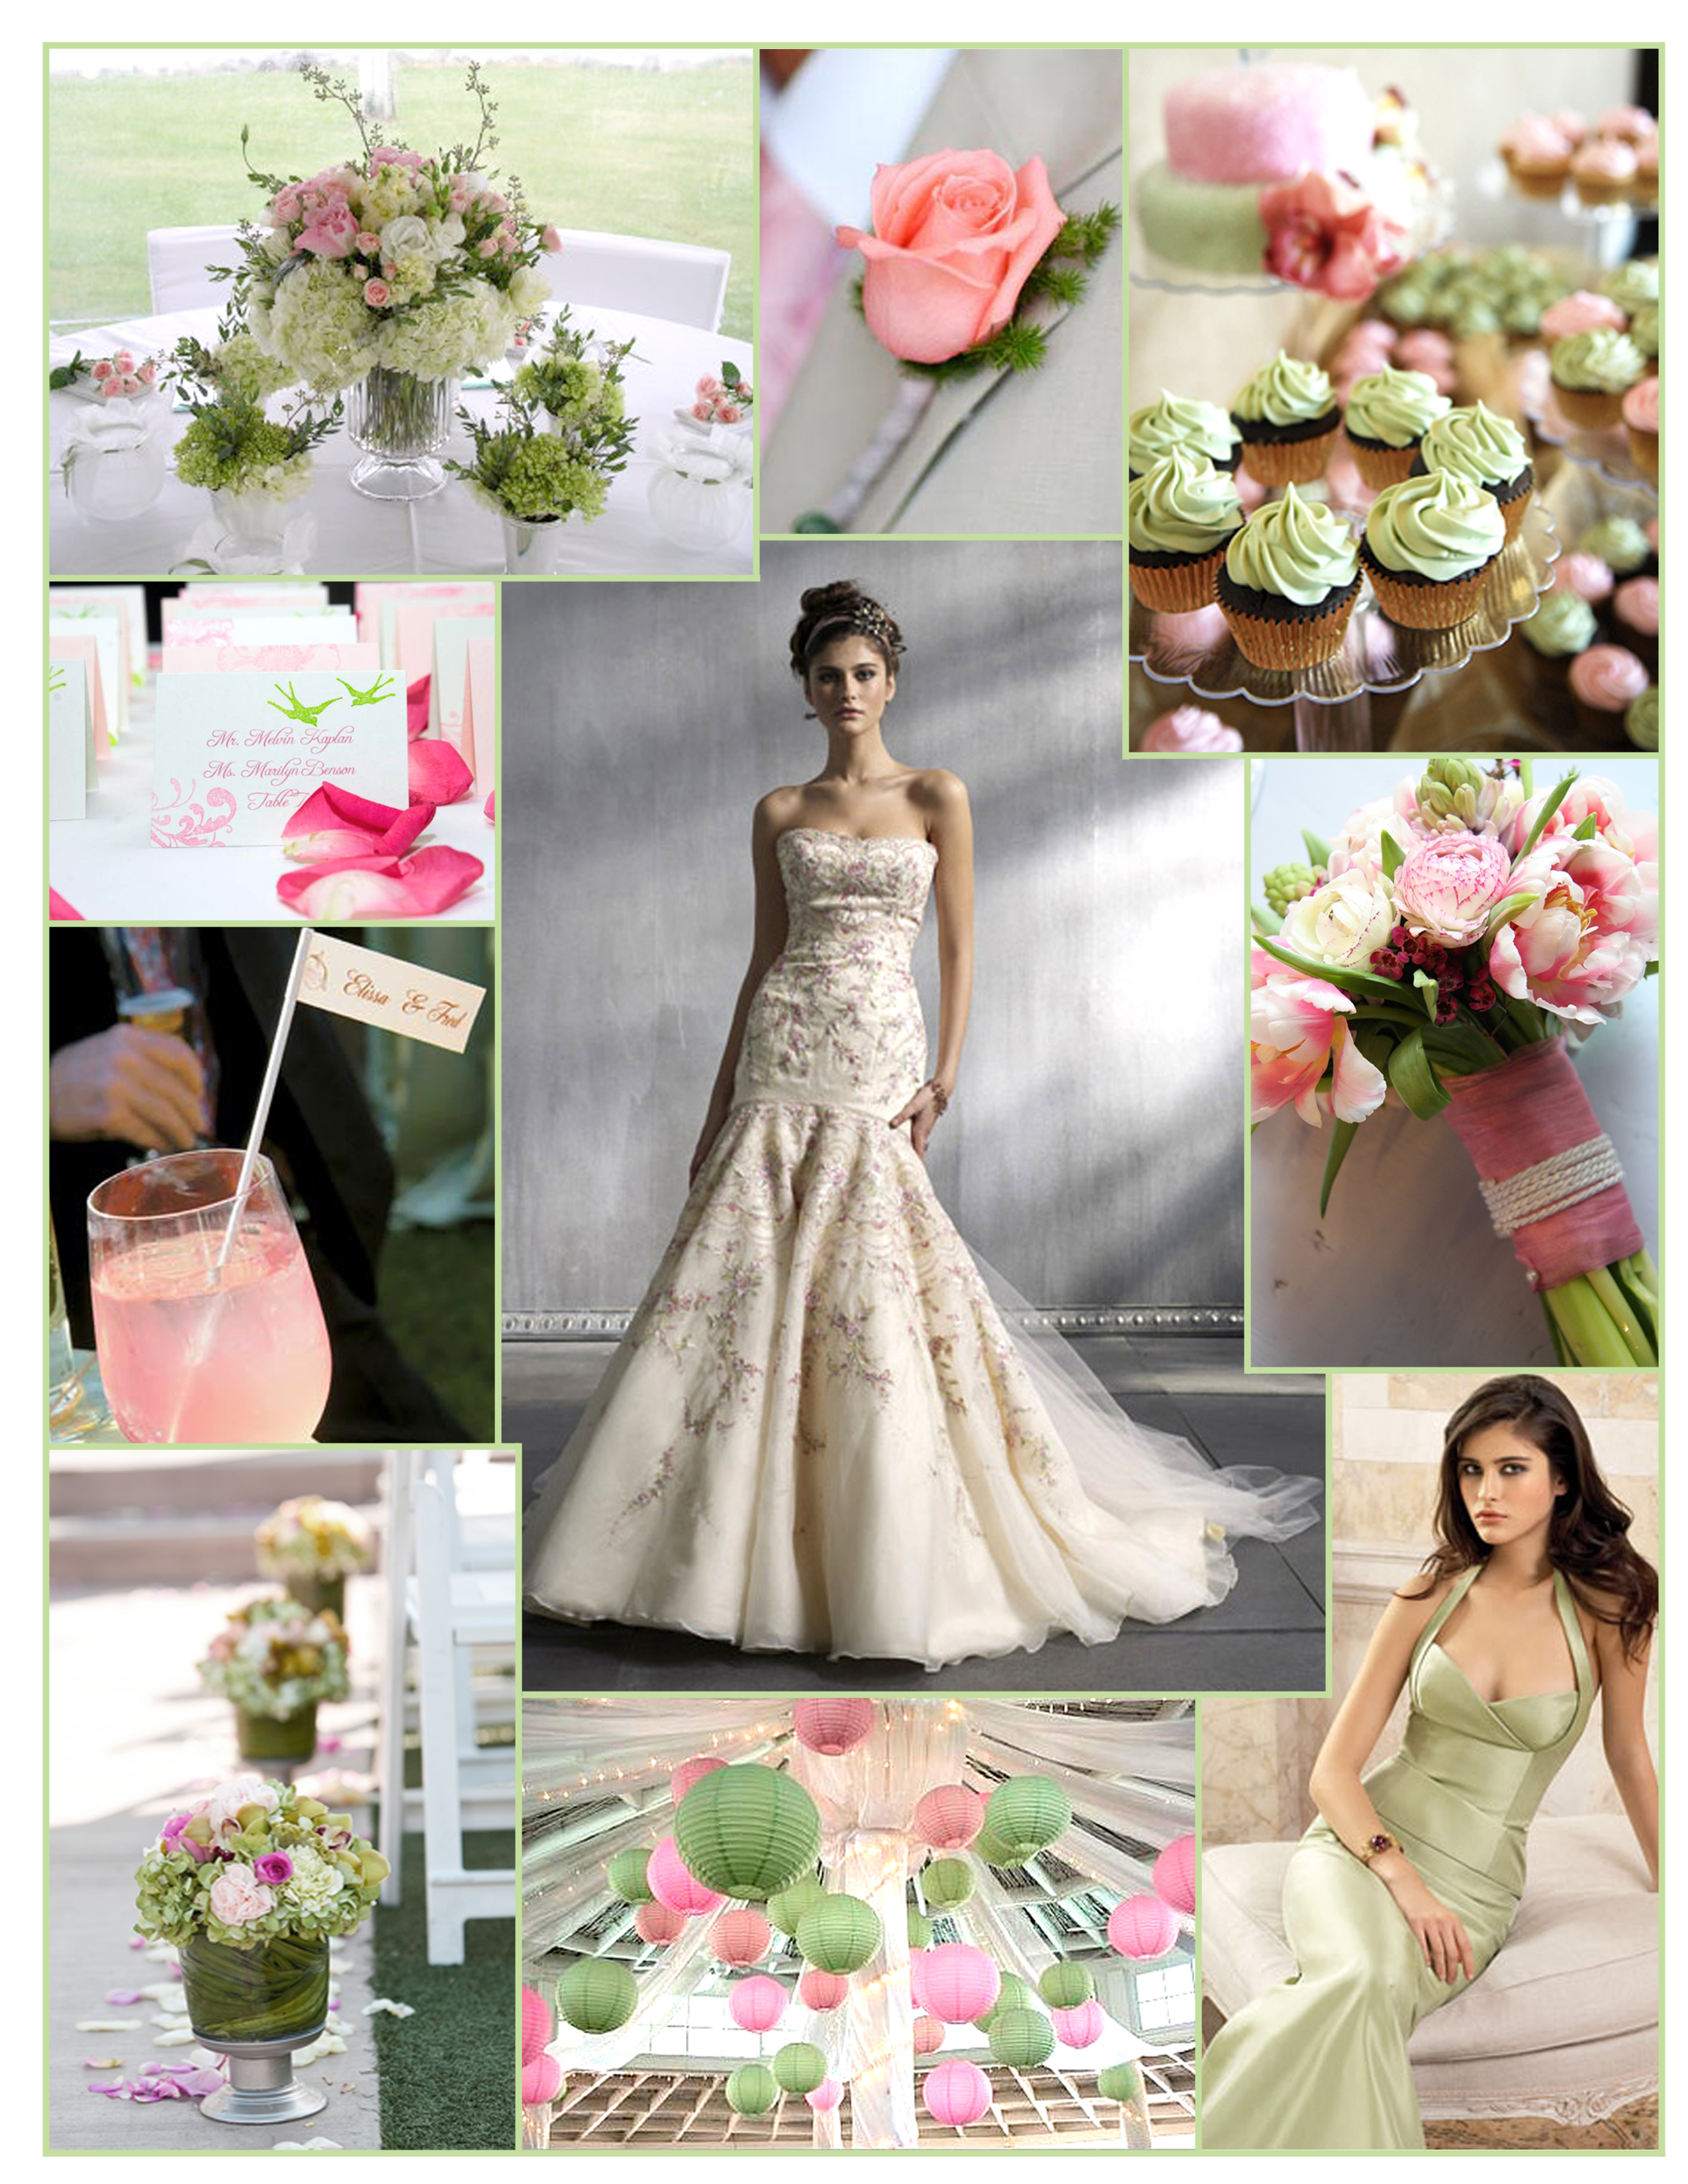 Inspiration, Reception, Flowers & Decor, Bridesmaids, Bridesmaids Dresses, Wedding Dresses, Cakes, Fashion, pink, green, cake, dress, Bridesmaid Bouquets, Flowers, Board, Lazaro, Paper lanterns, Cupakes, Flower Wedding Dresses